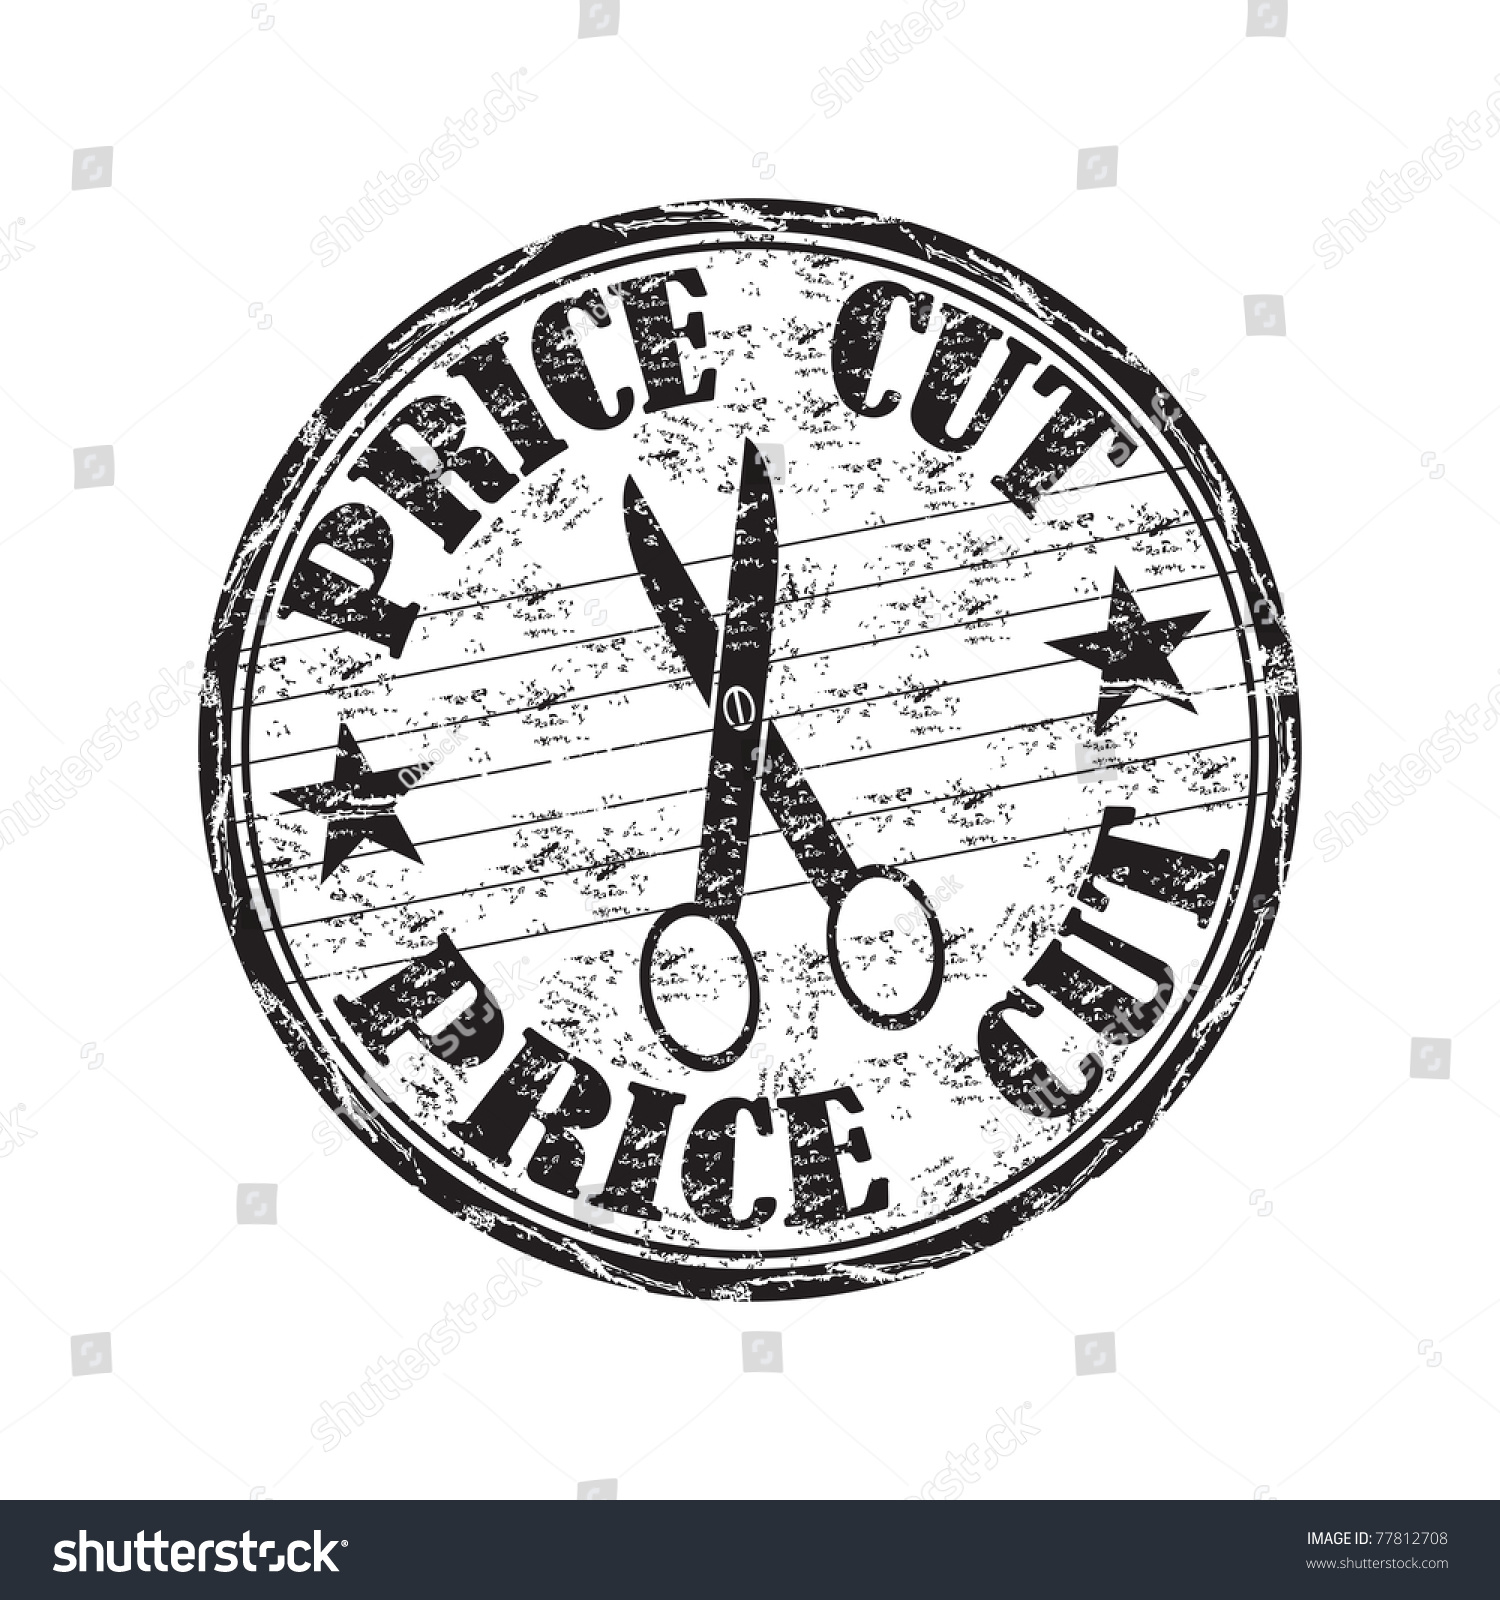 Black grunge rubber stamp scissor text stock vector 77812708 black grunge rubber stamp with scissor and the text price cut written inside the stamp biocorpaavc